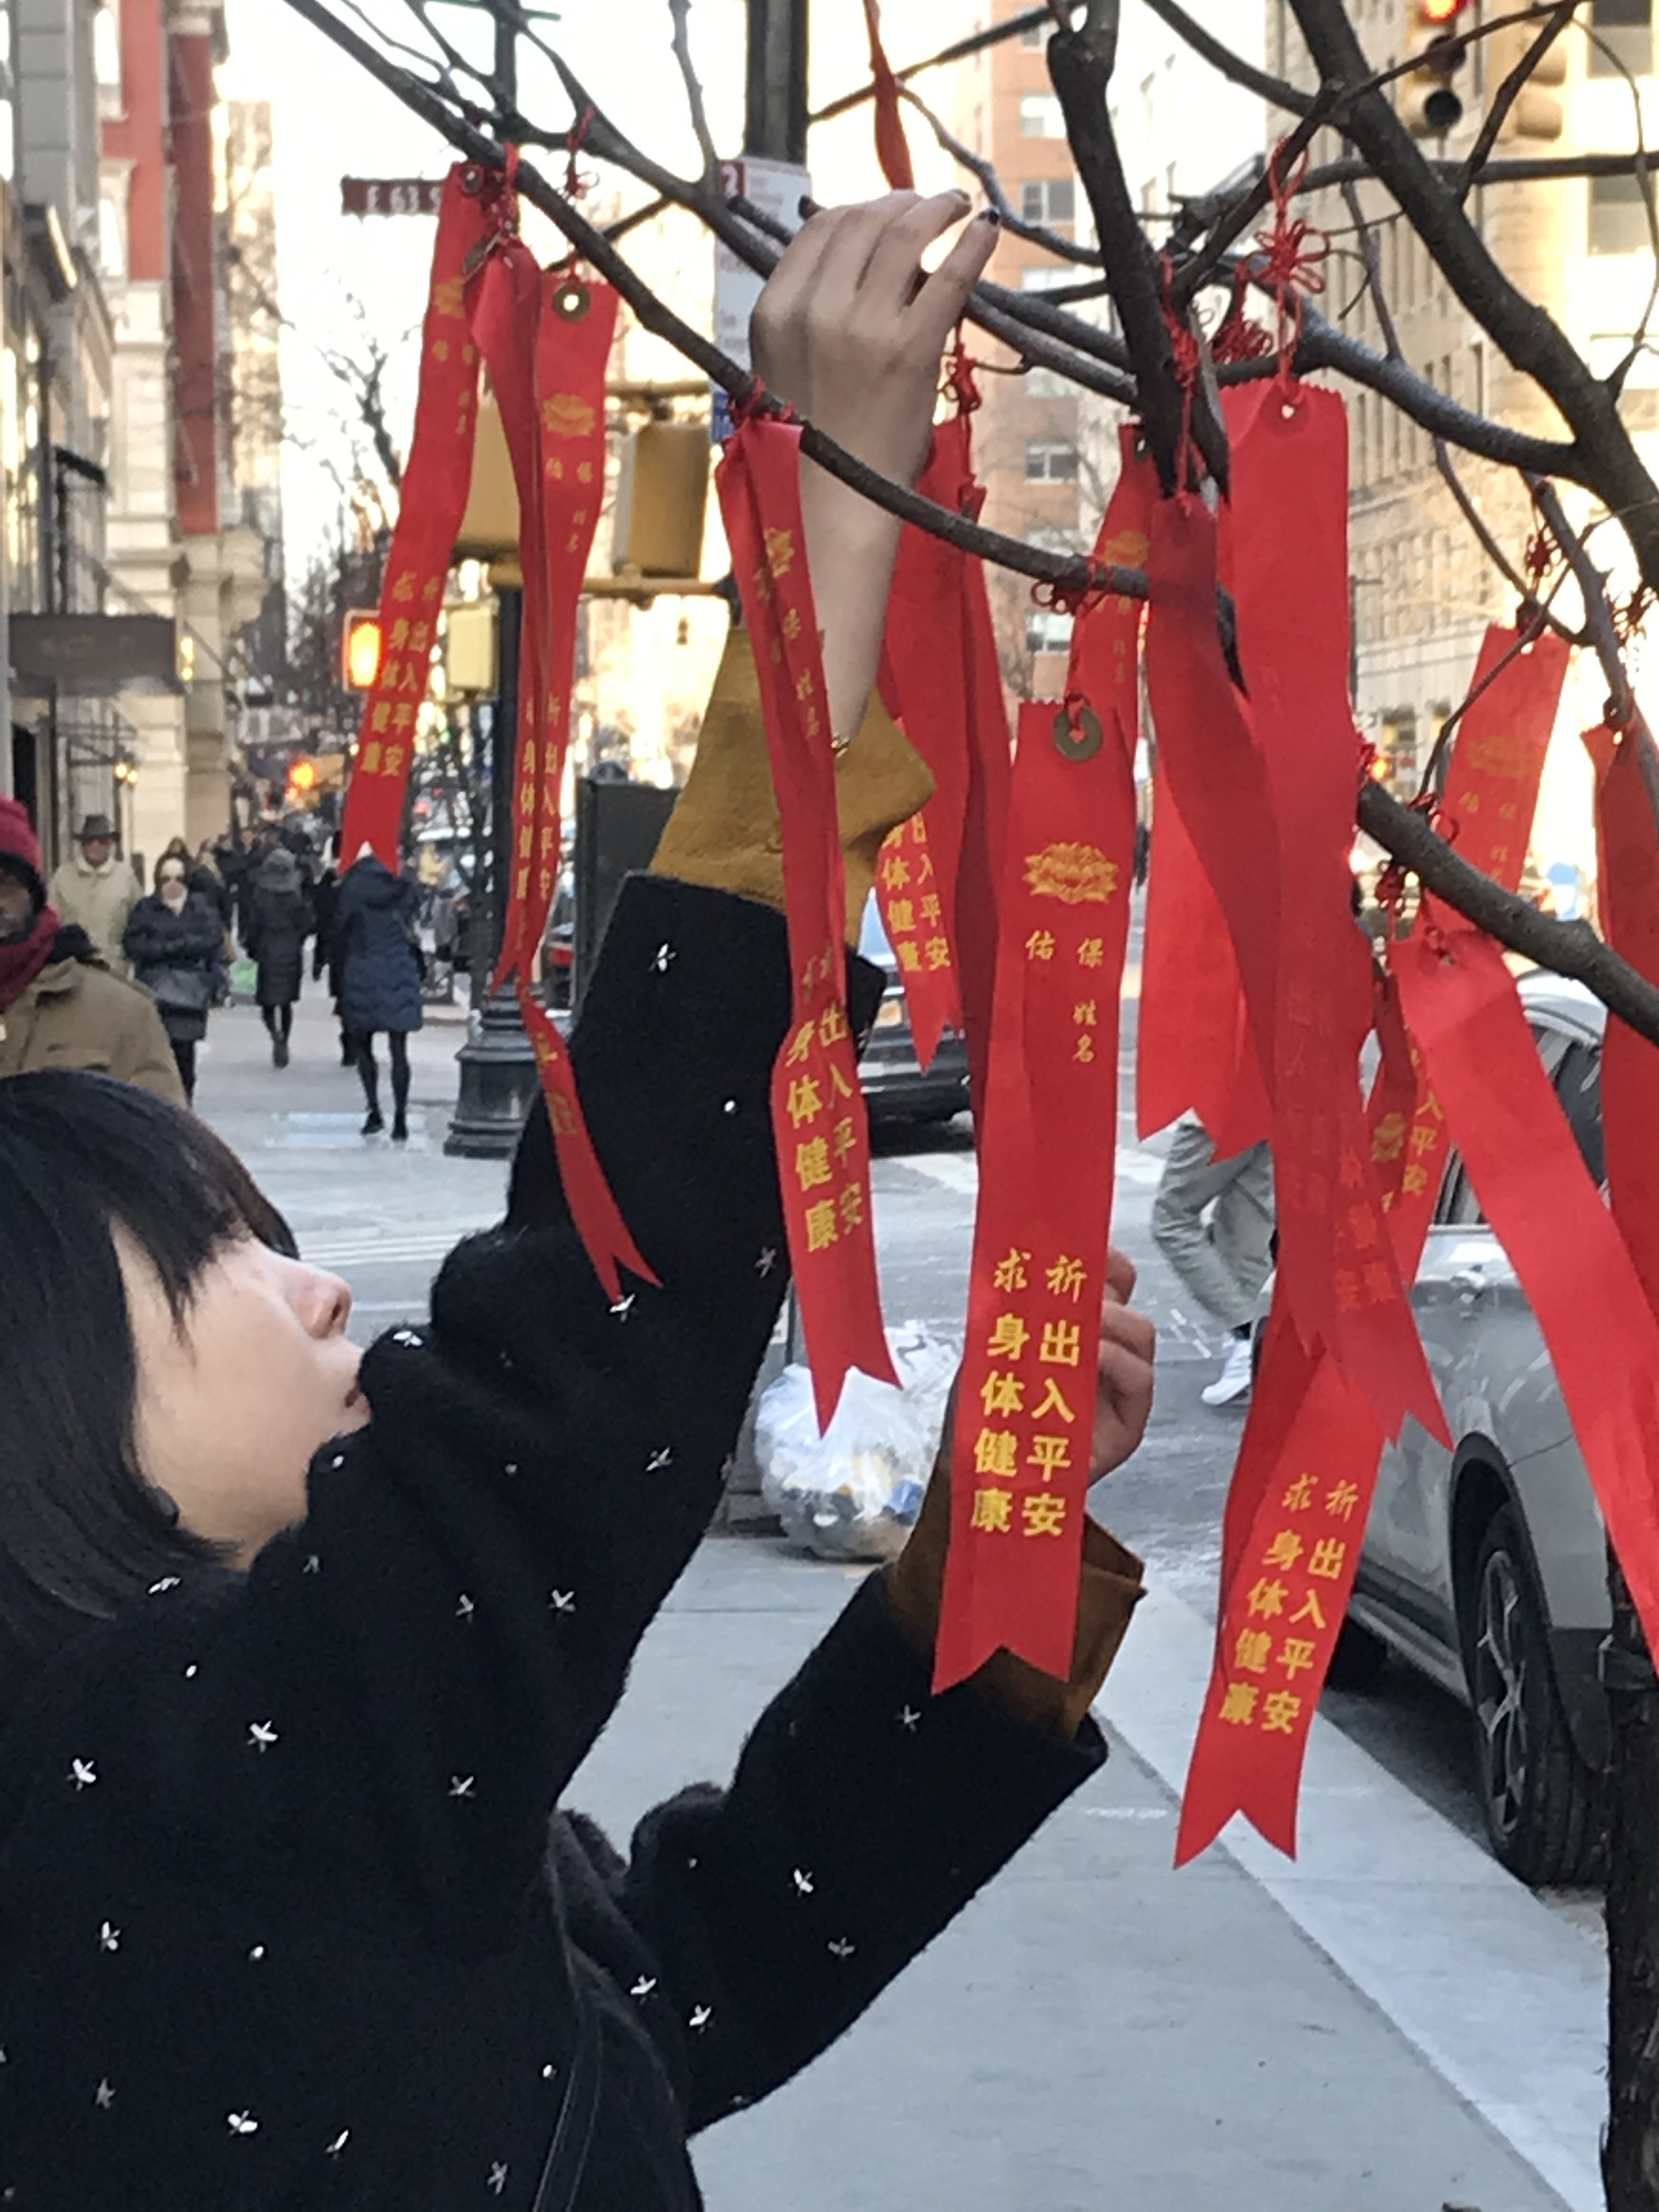 Make a Wish at Madison Avenue's Lunar New Year Celebration, Saturday, February 1, 2020